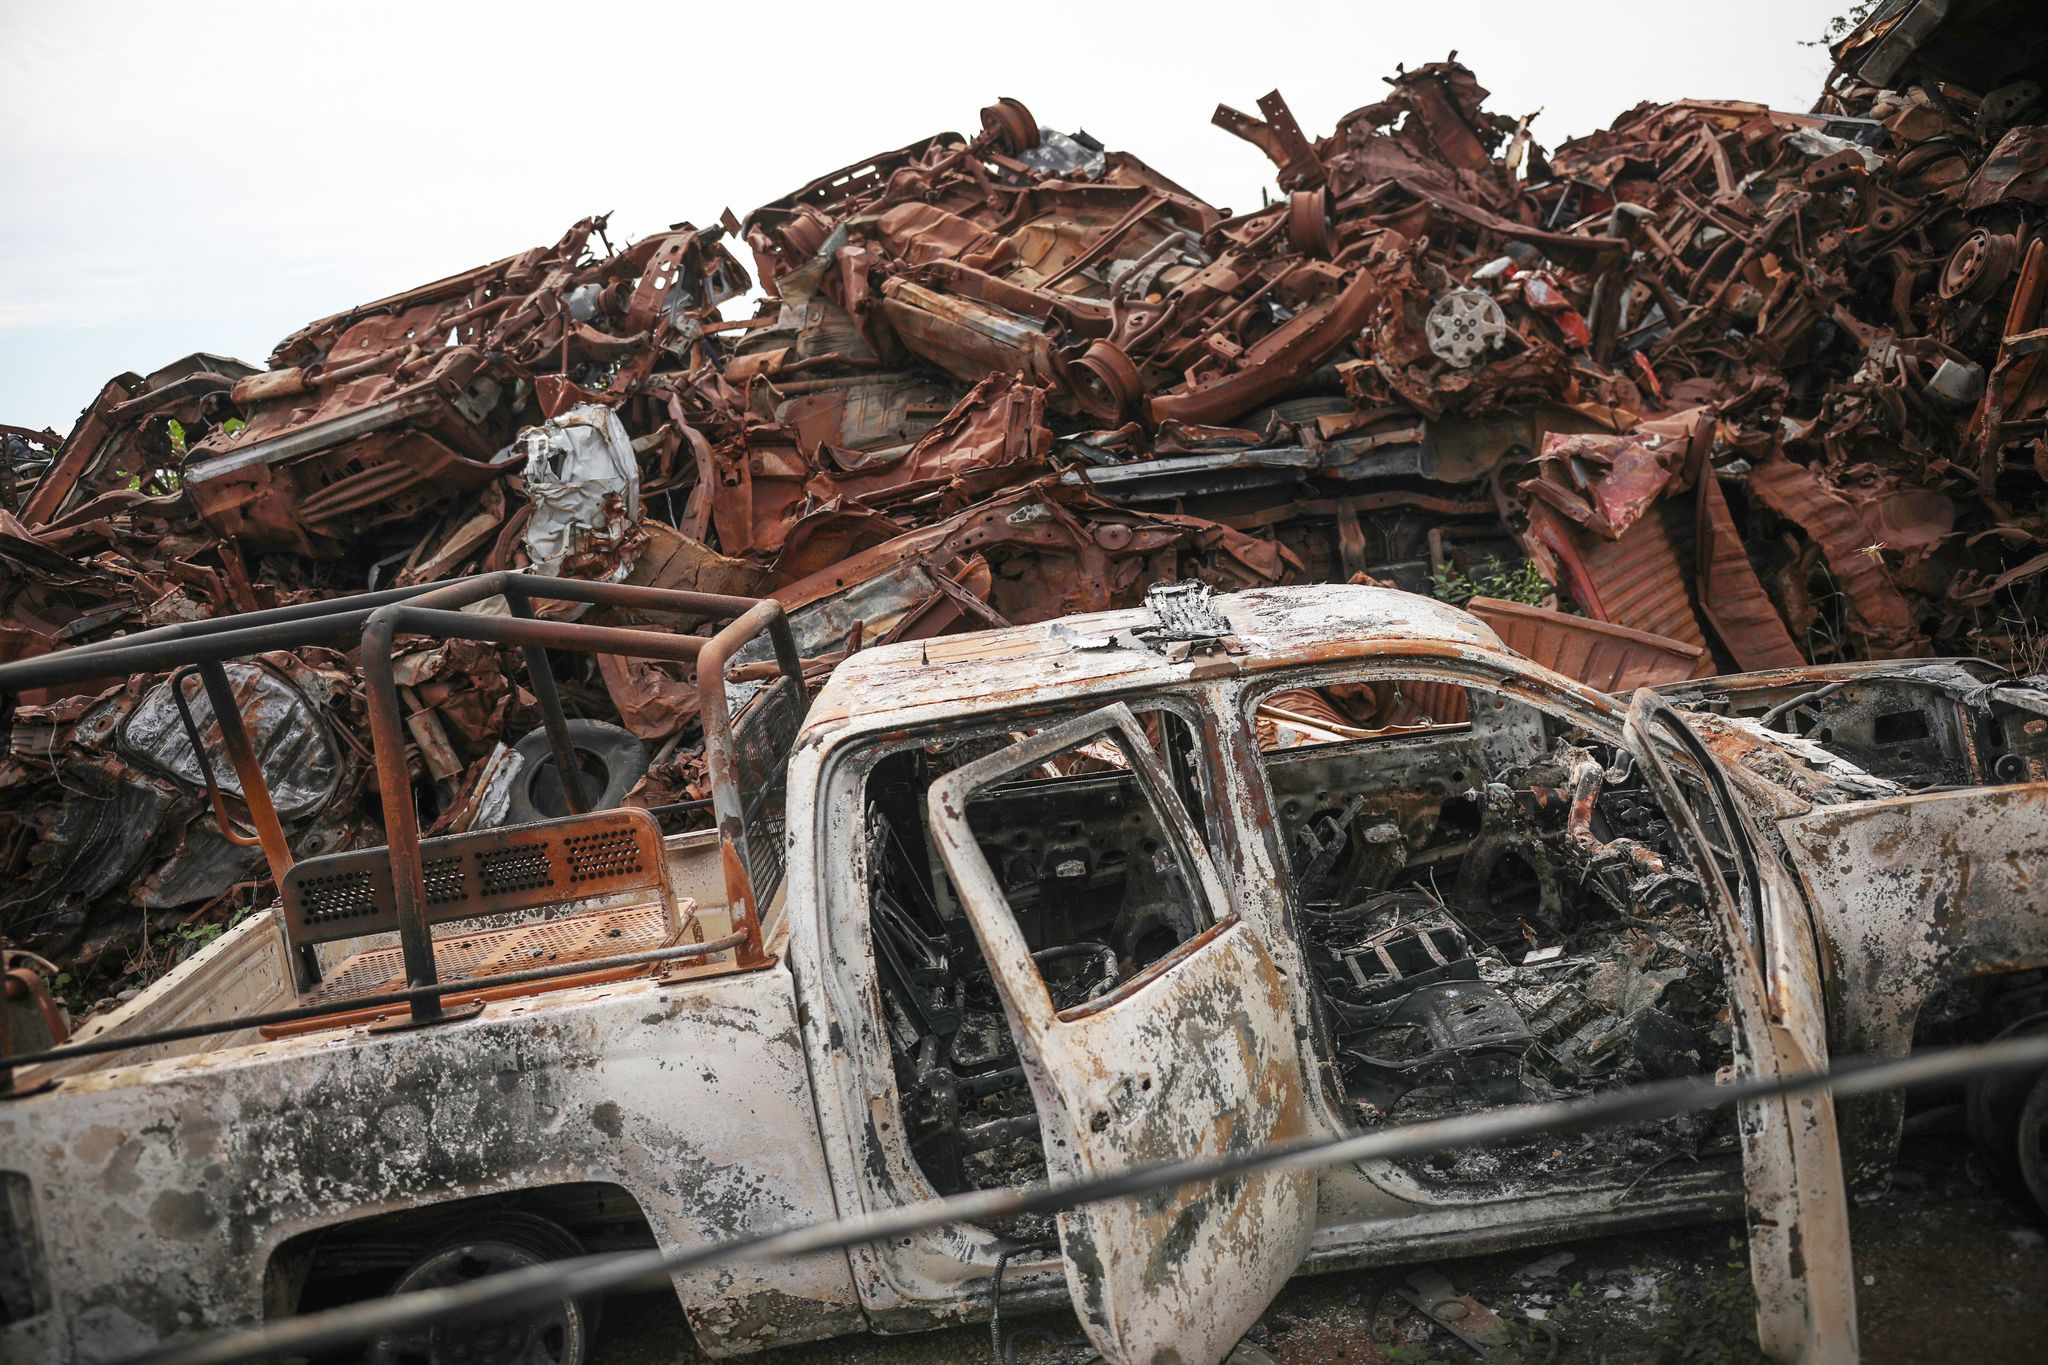 A junkyard littered with the husks of vehicles that were set on fire by sicarios during the Black Thursday attack